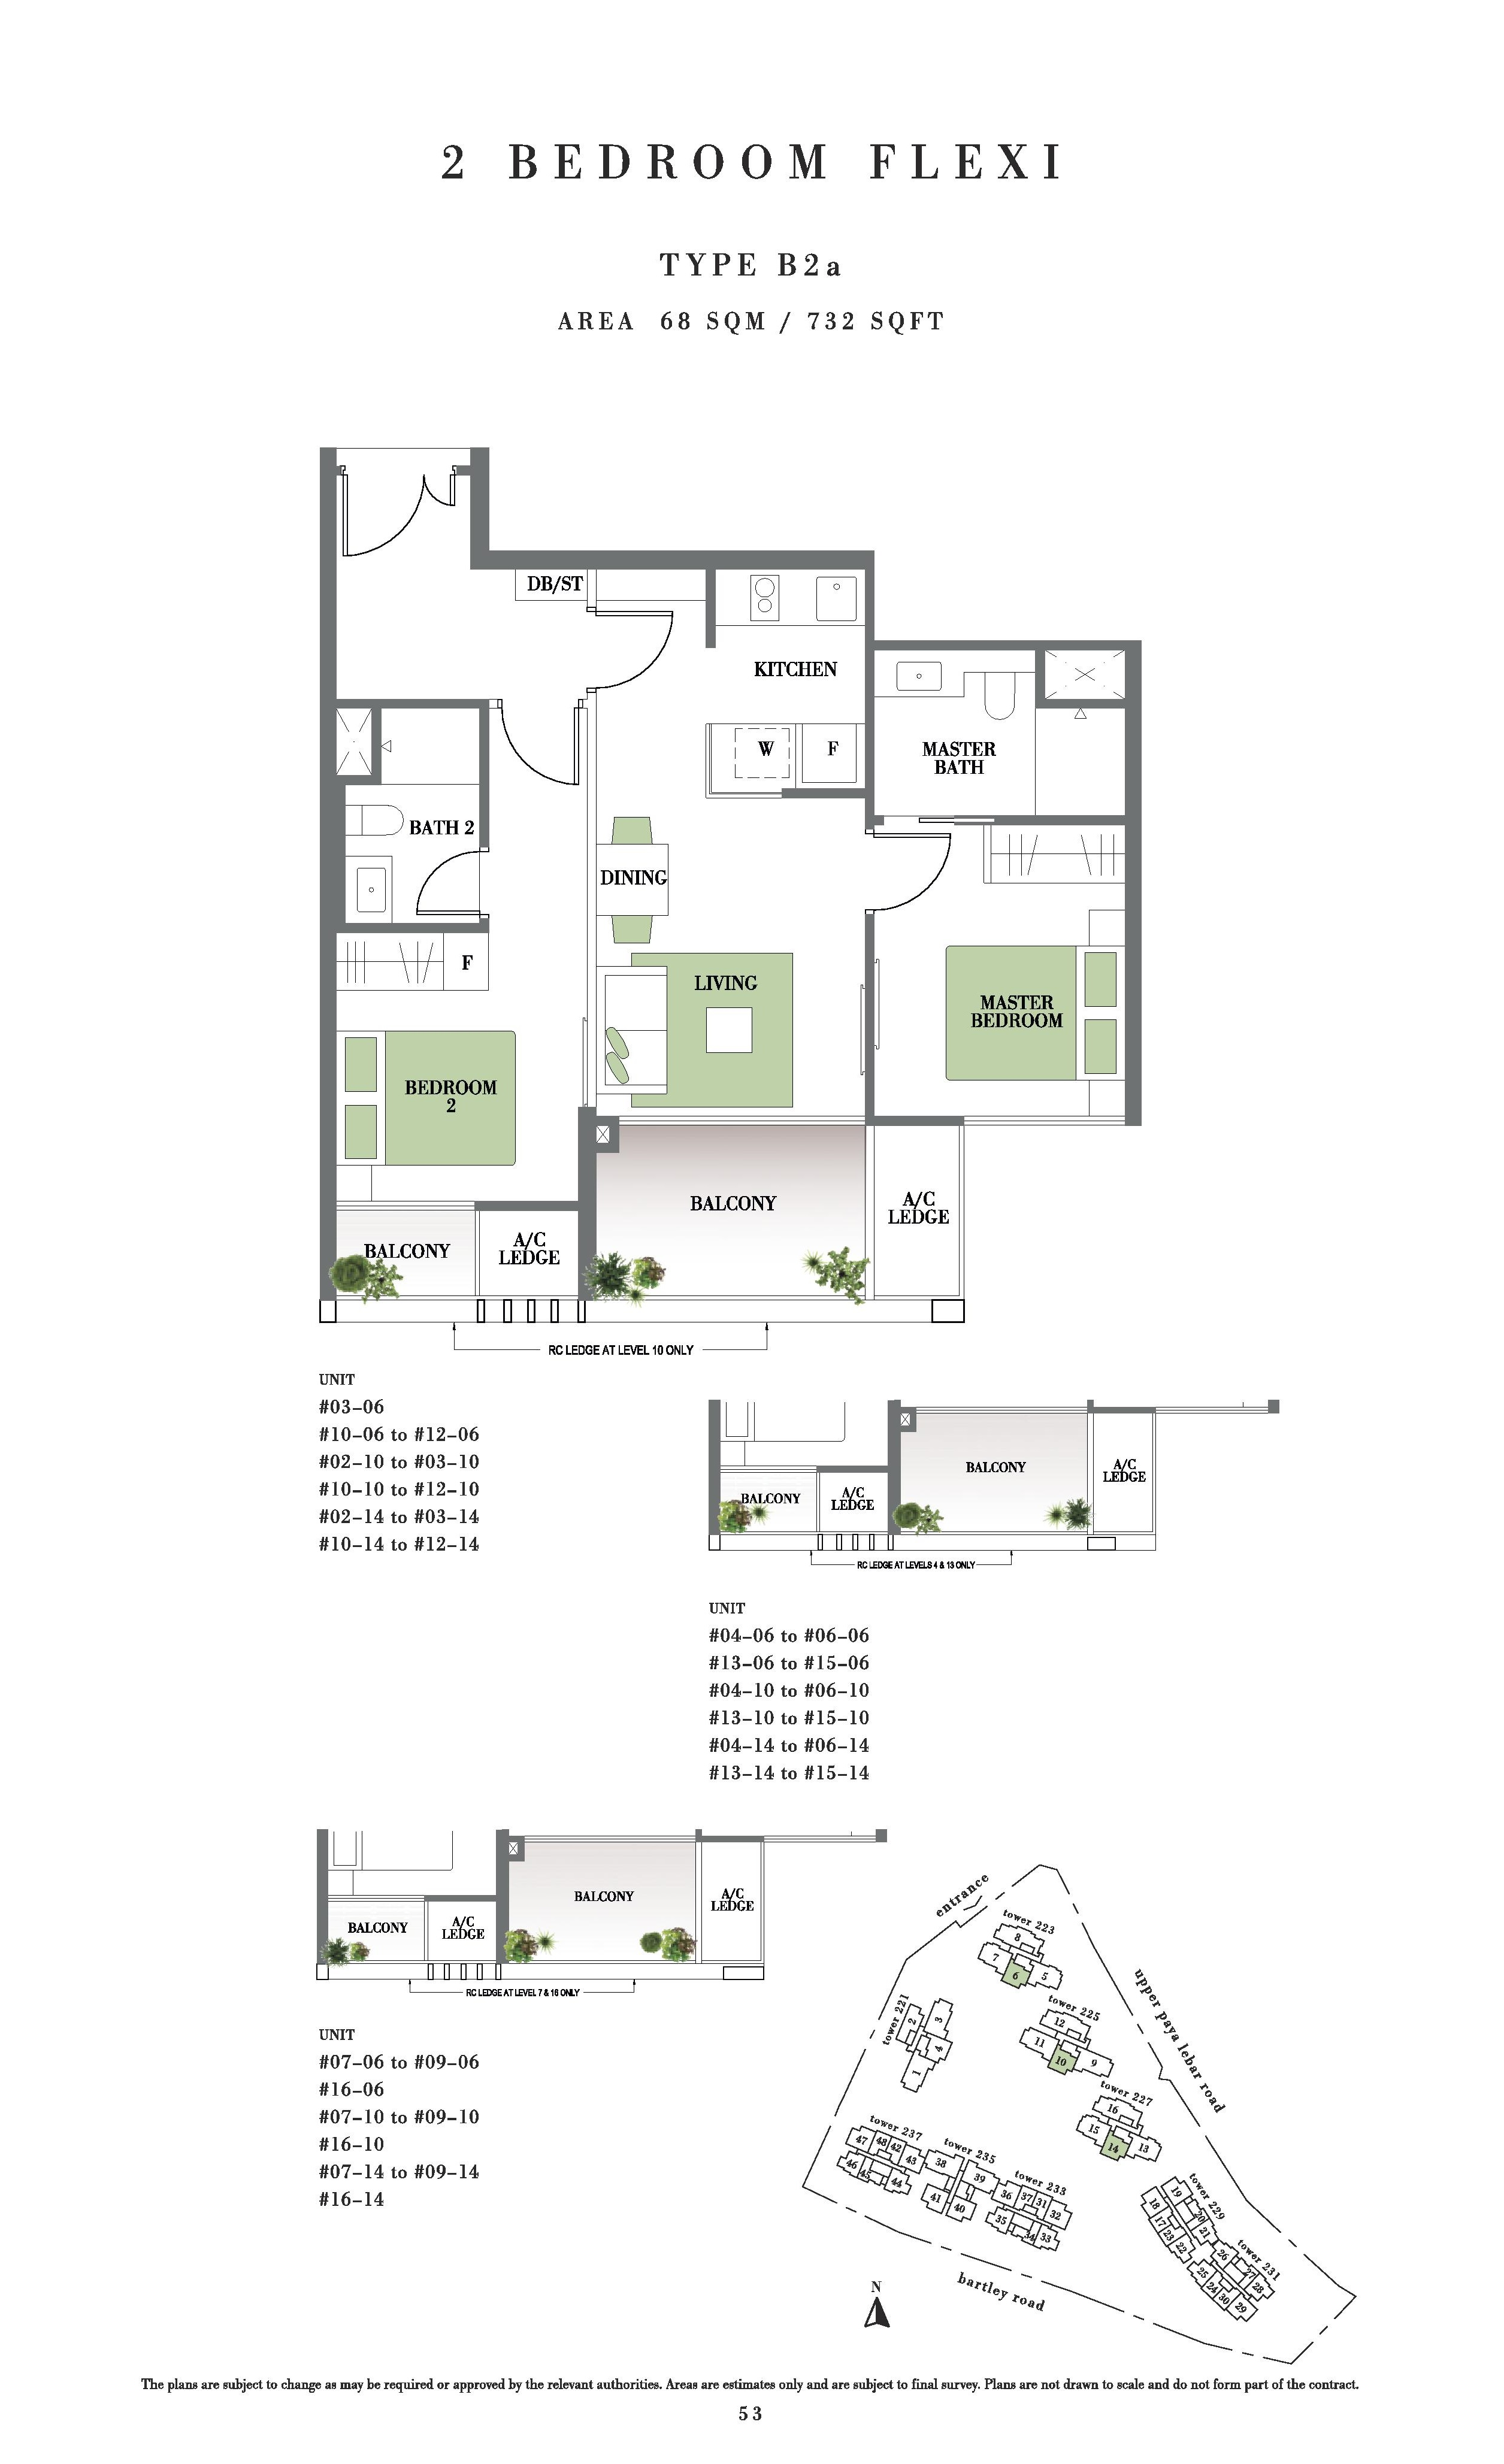 Botanique @ Bartley 2 Bedroom Flexi Floor Plans Type B2a